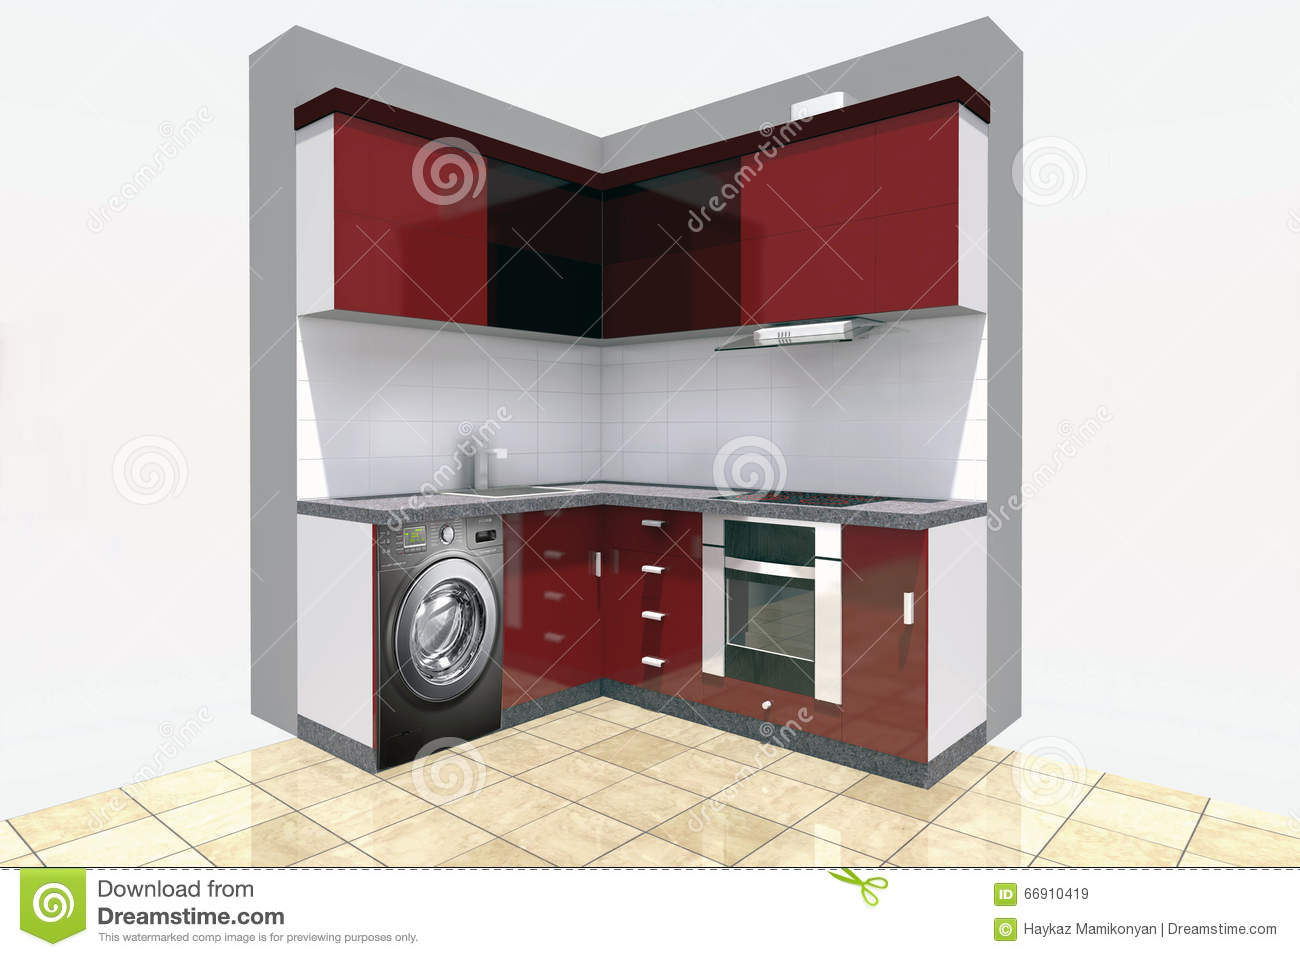 Autocad For Kitchen Design Kitchen Design Stock Illustration Image 66910419